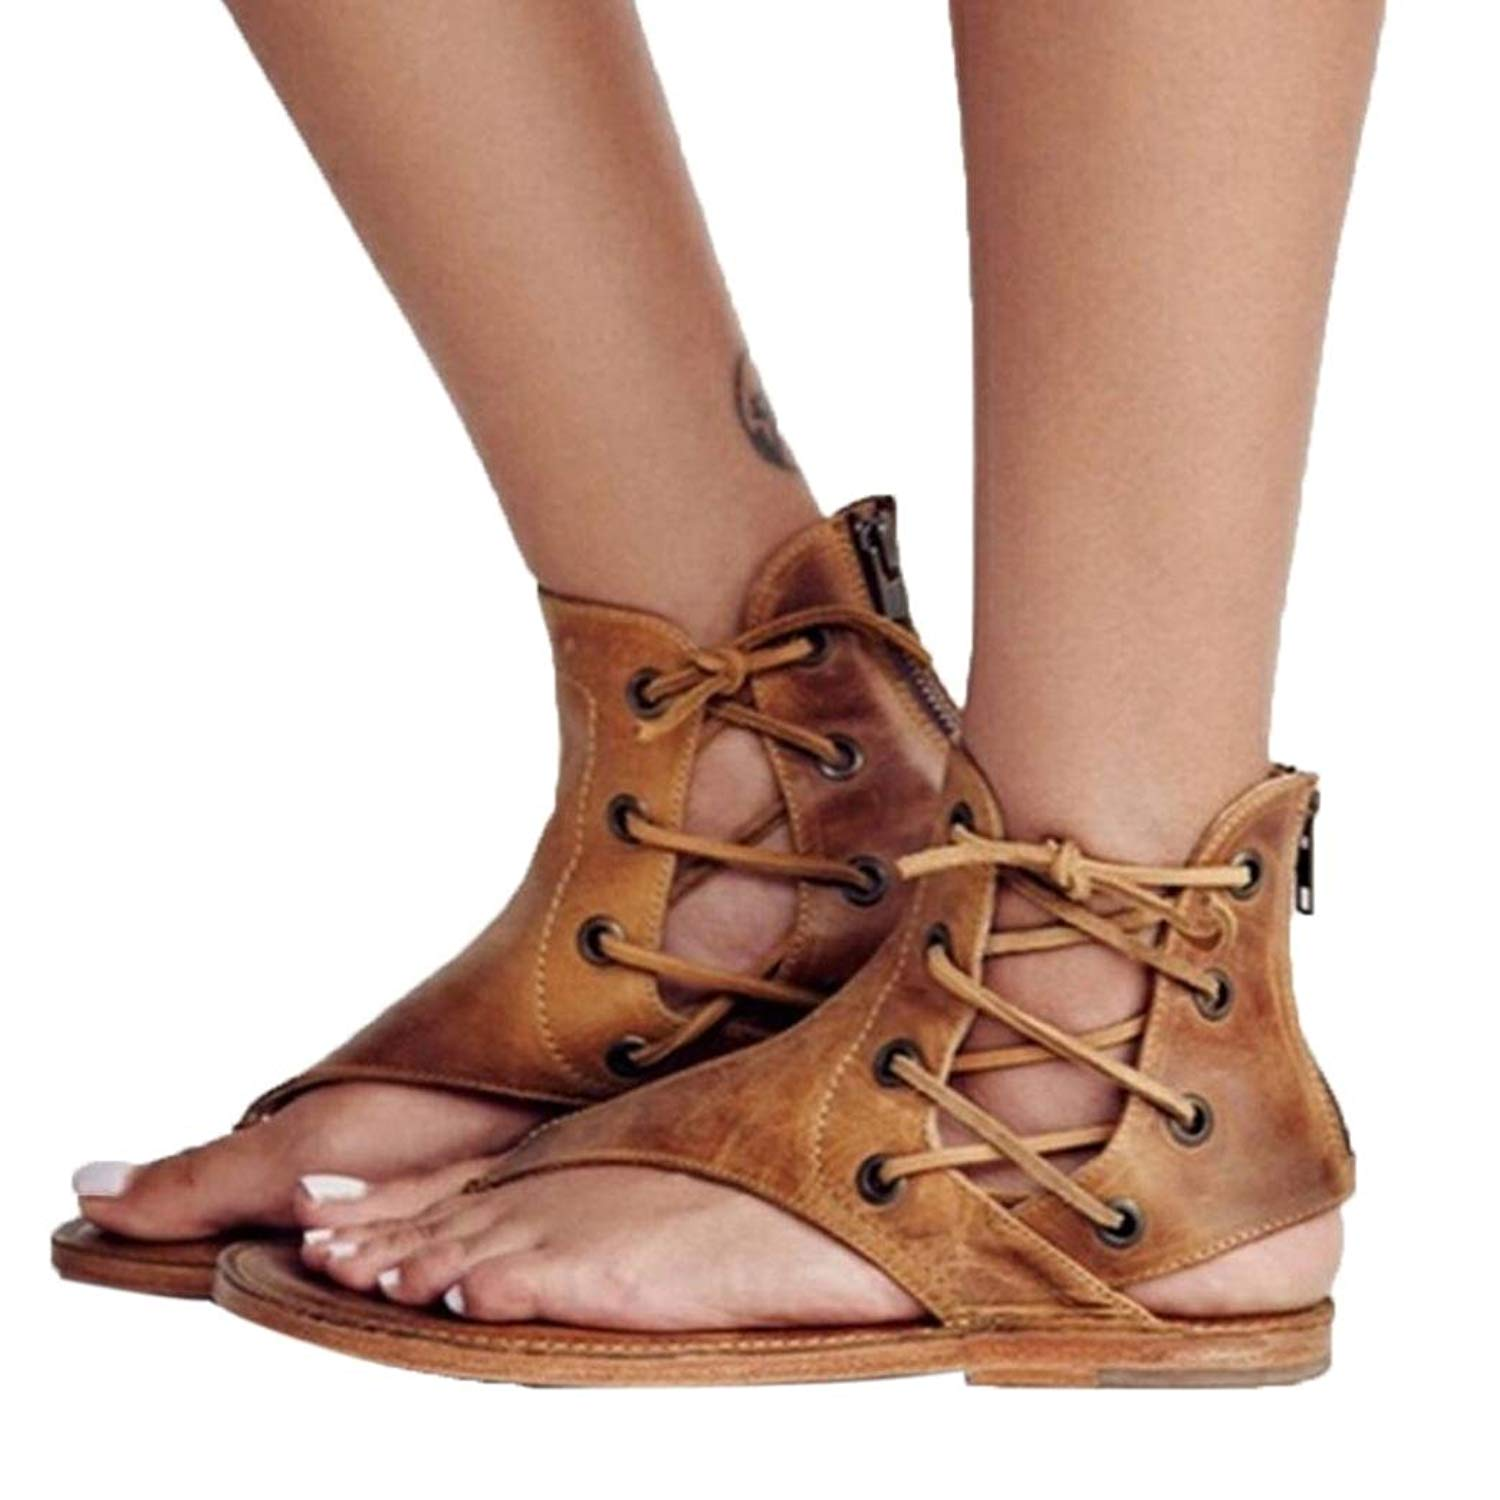 Fheaven Women Flat bottomed Roman Sandals T-Strappy Peep-Toe Sandals Ankle Strap Flat Shoes